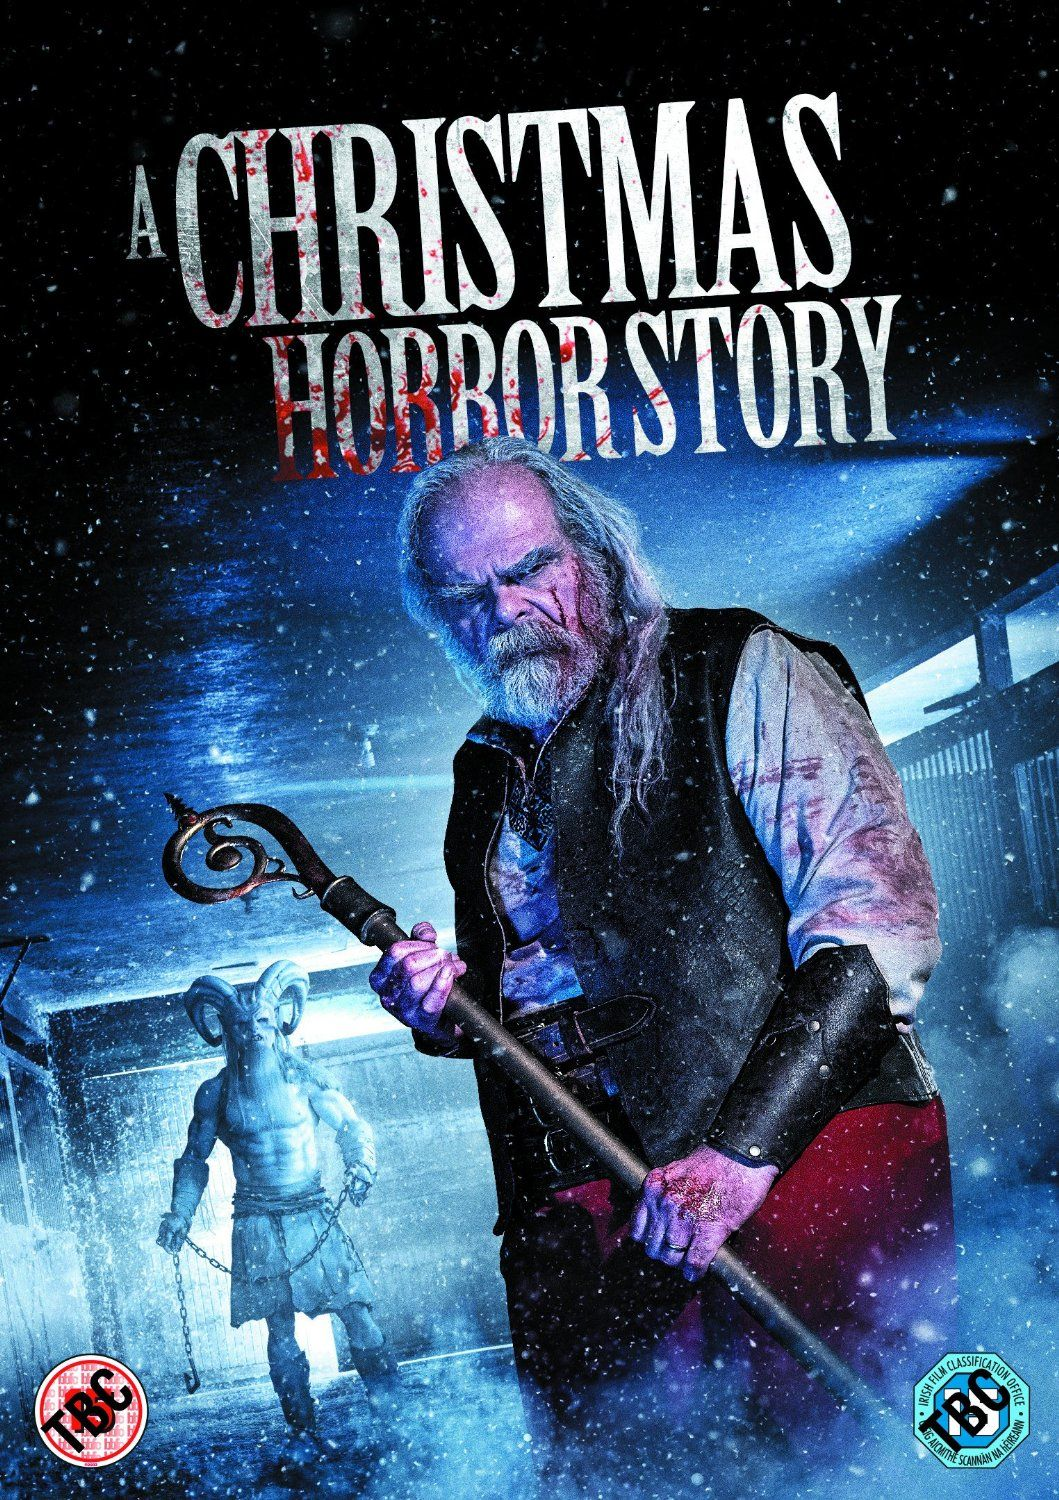 A Christmas Horror Story [DVD]: Amazon.co.uk: William Shatner ...